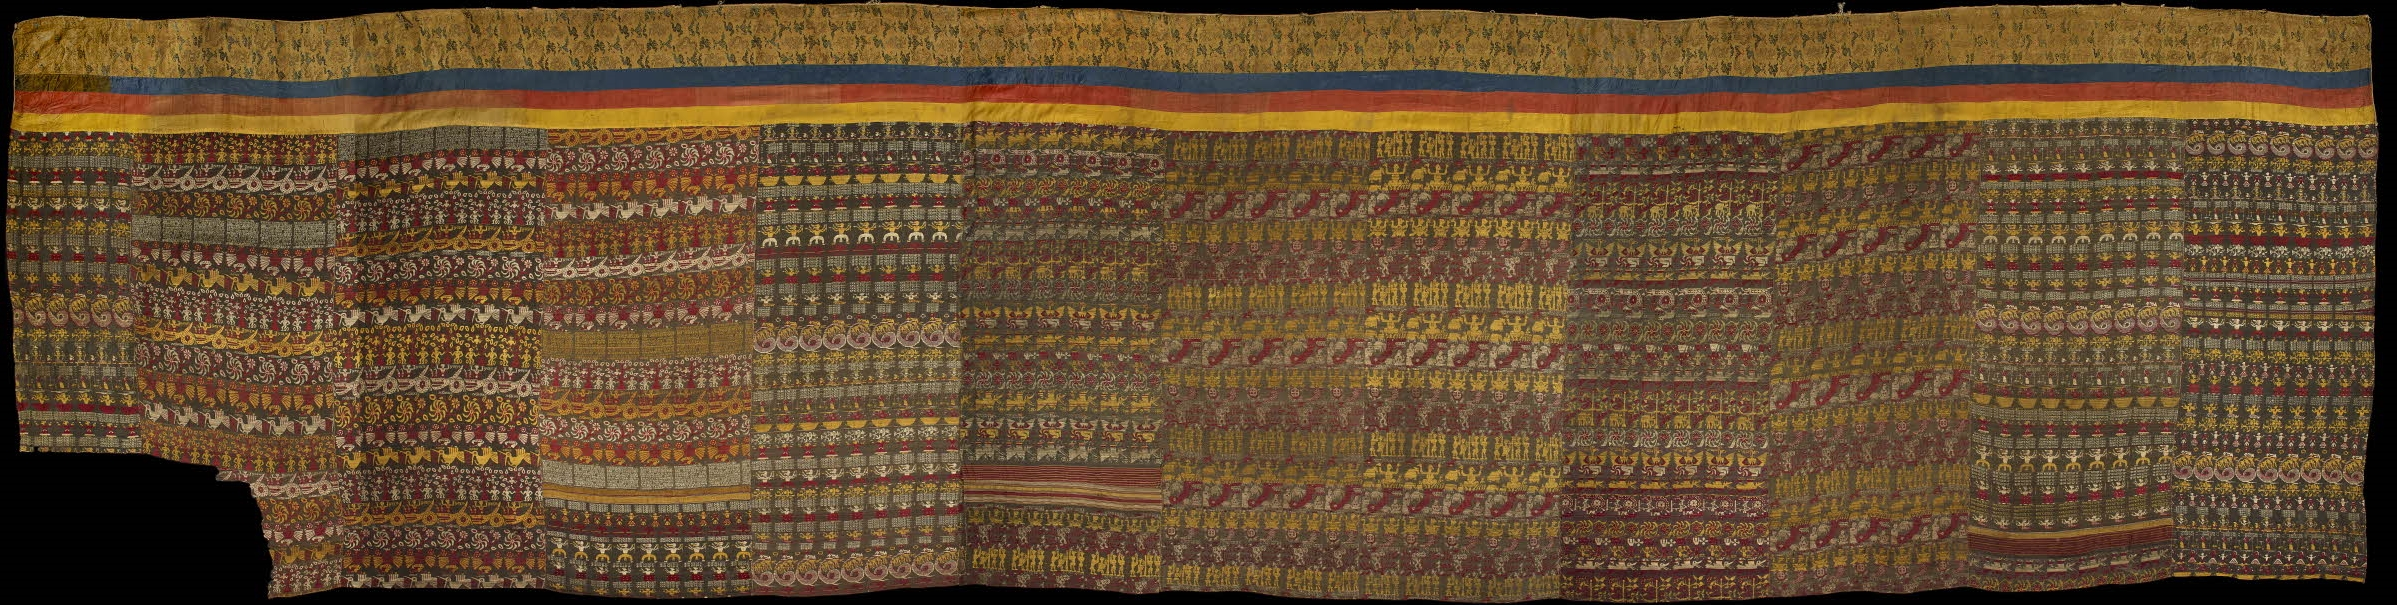 A series of silk, 17th century Vrindavani Vastra textiles, now on display in the British Museum, London.